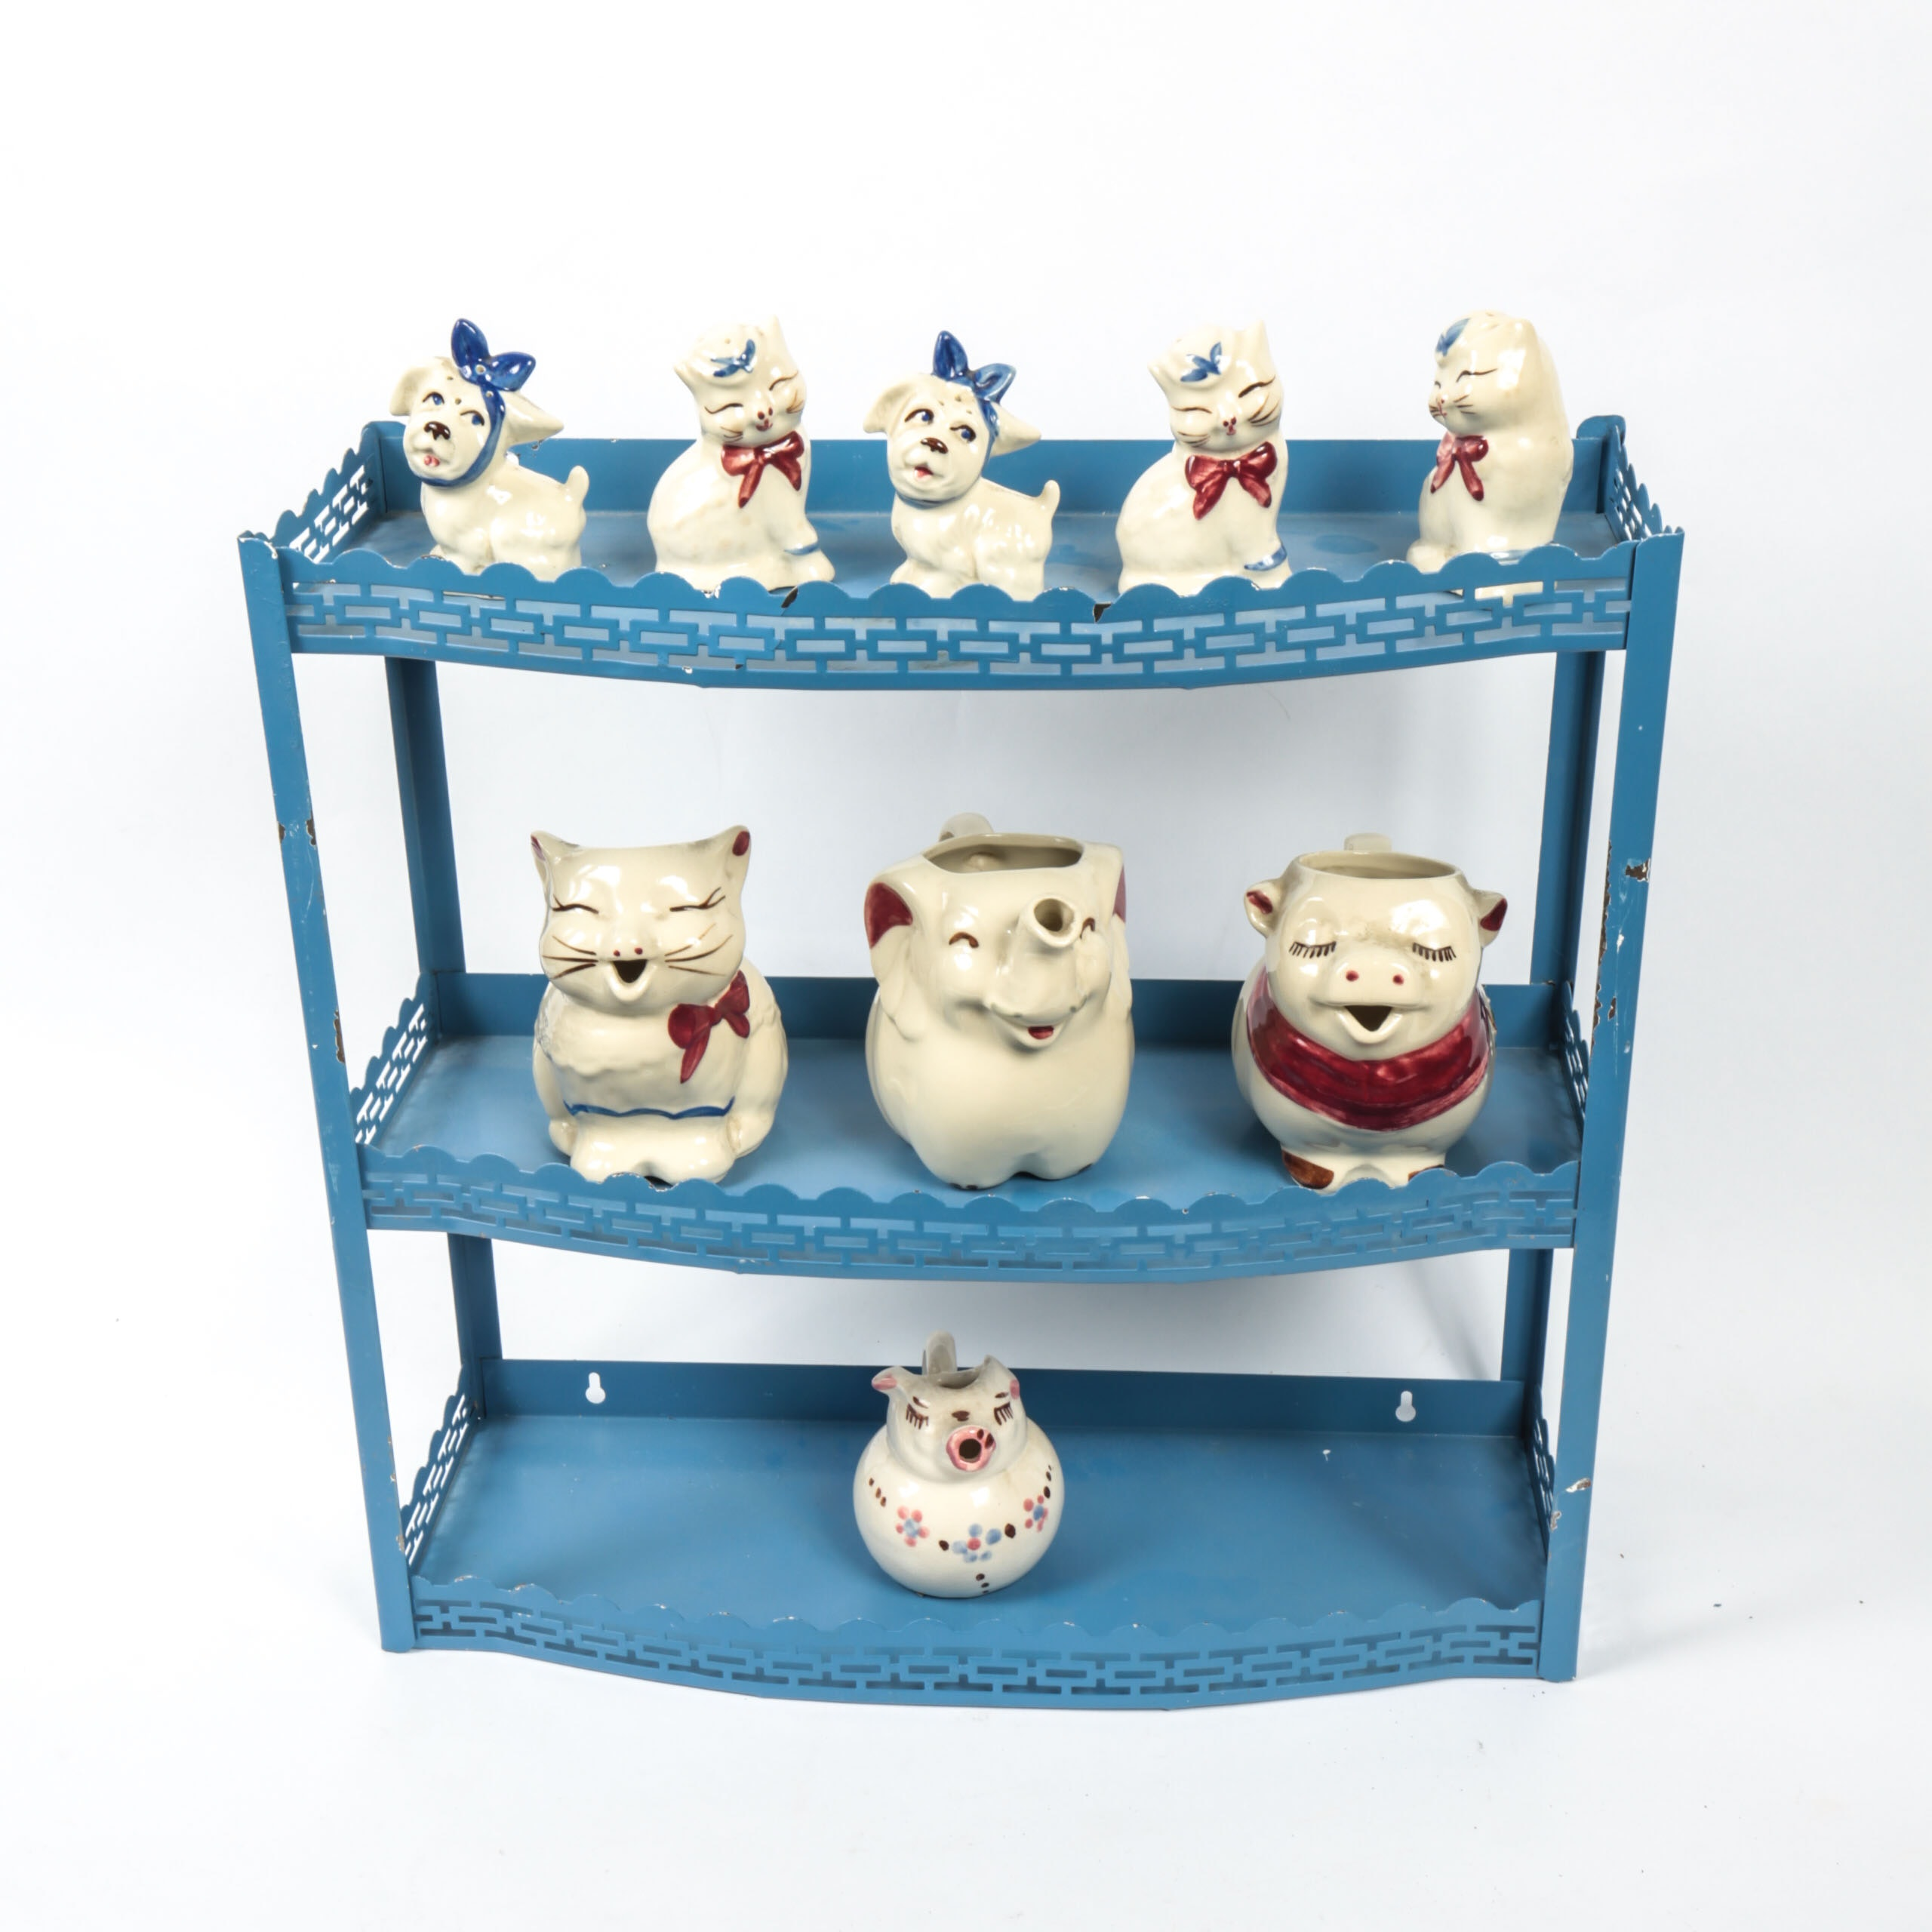 Collection of Ceramic Coin Banks, Shakers and Pitchers with Display Shelf